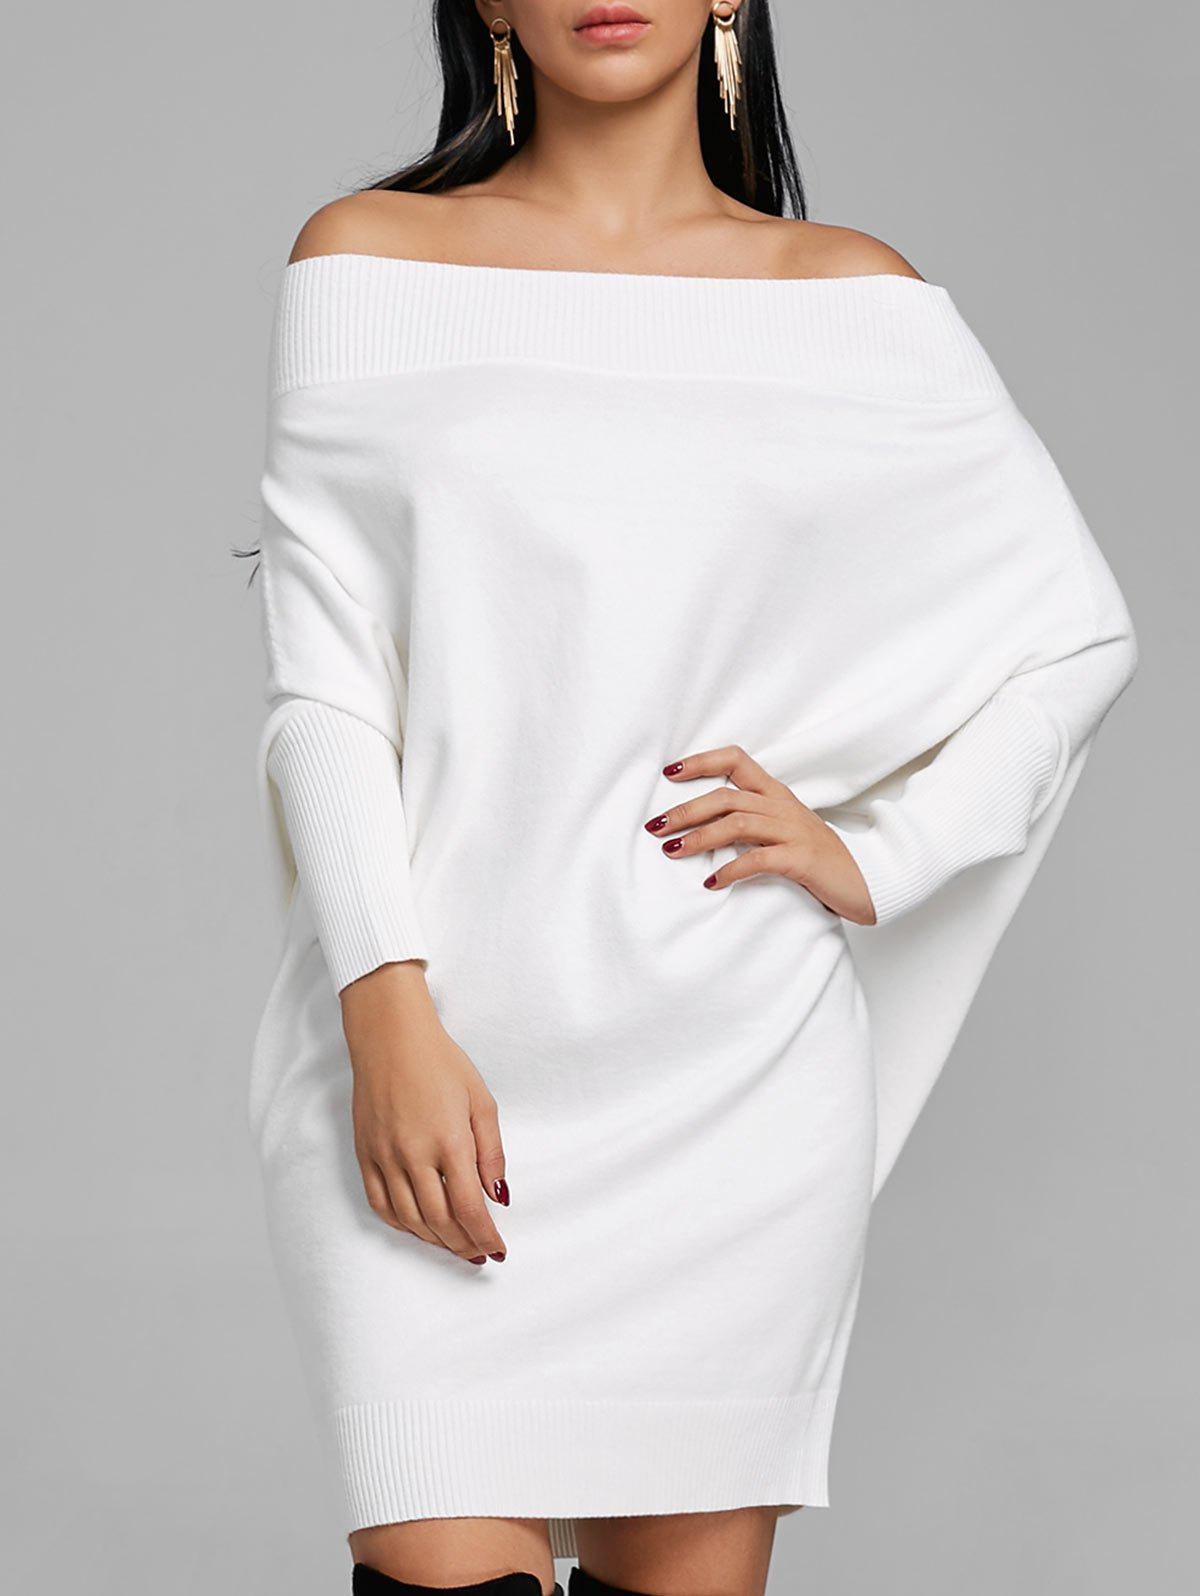 Kintted Off The Shoulder Batwing Sleeve Dress - WHITE XL